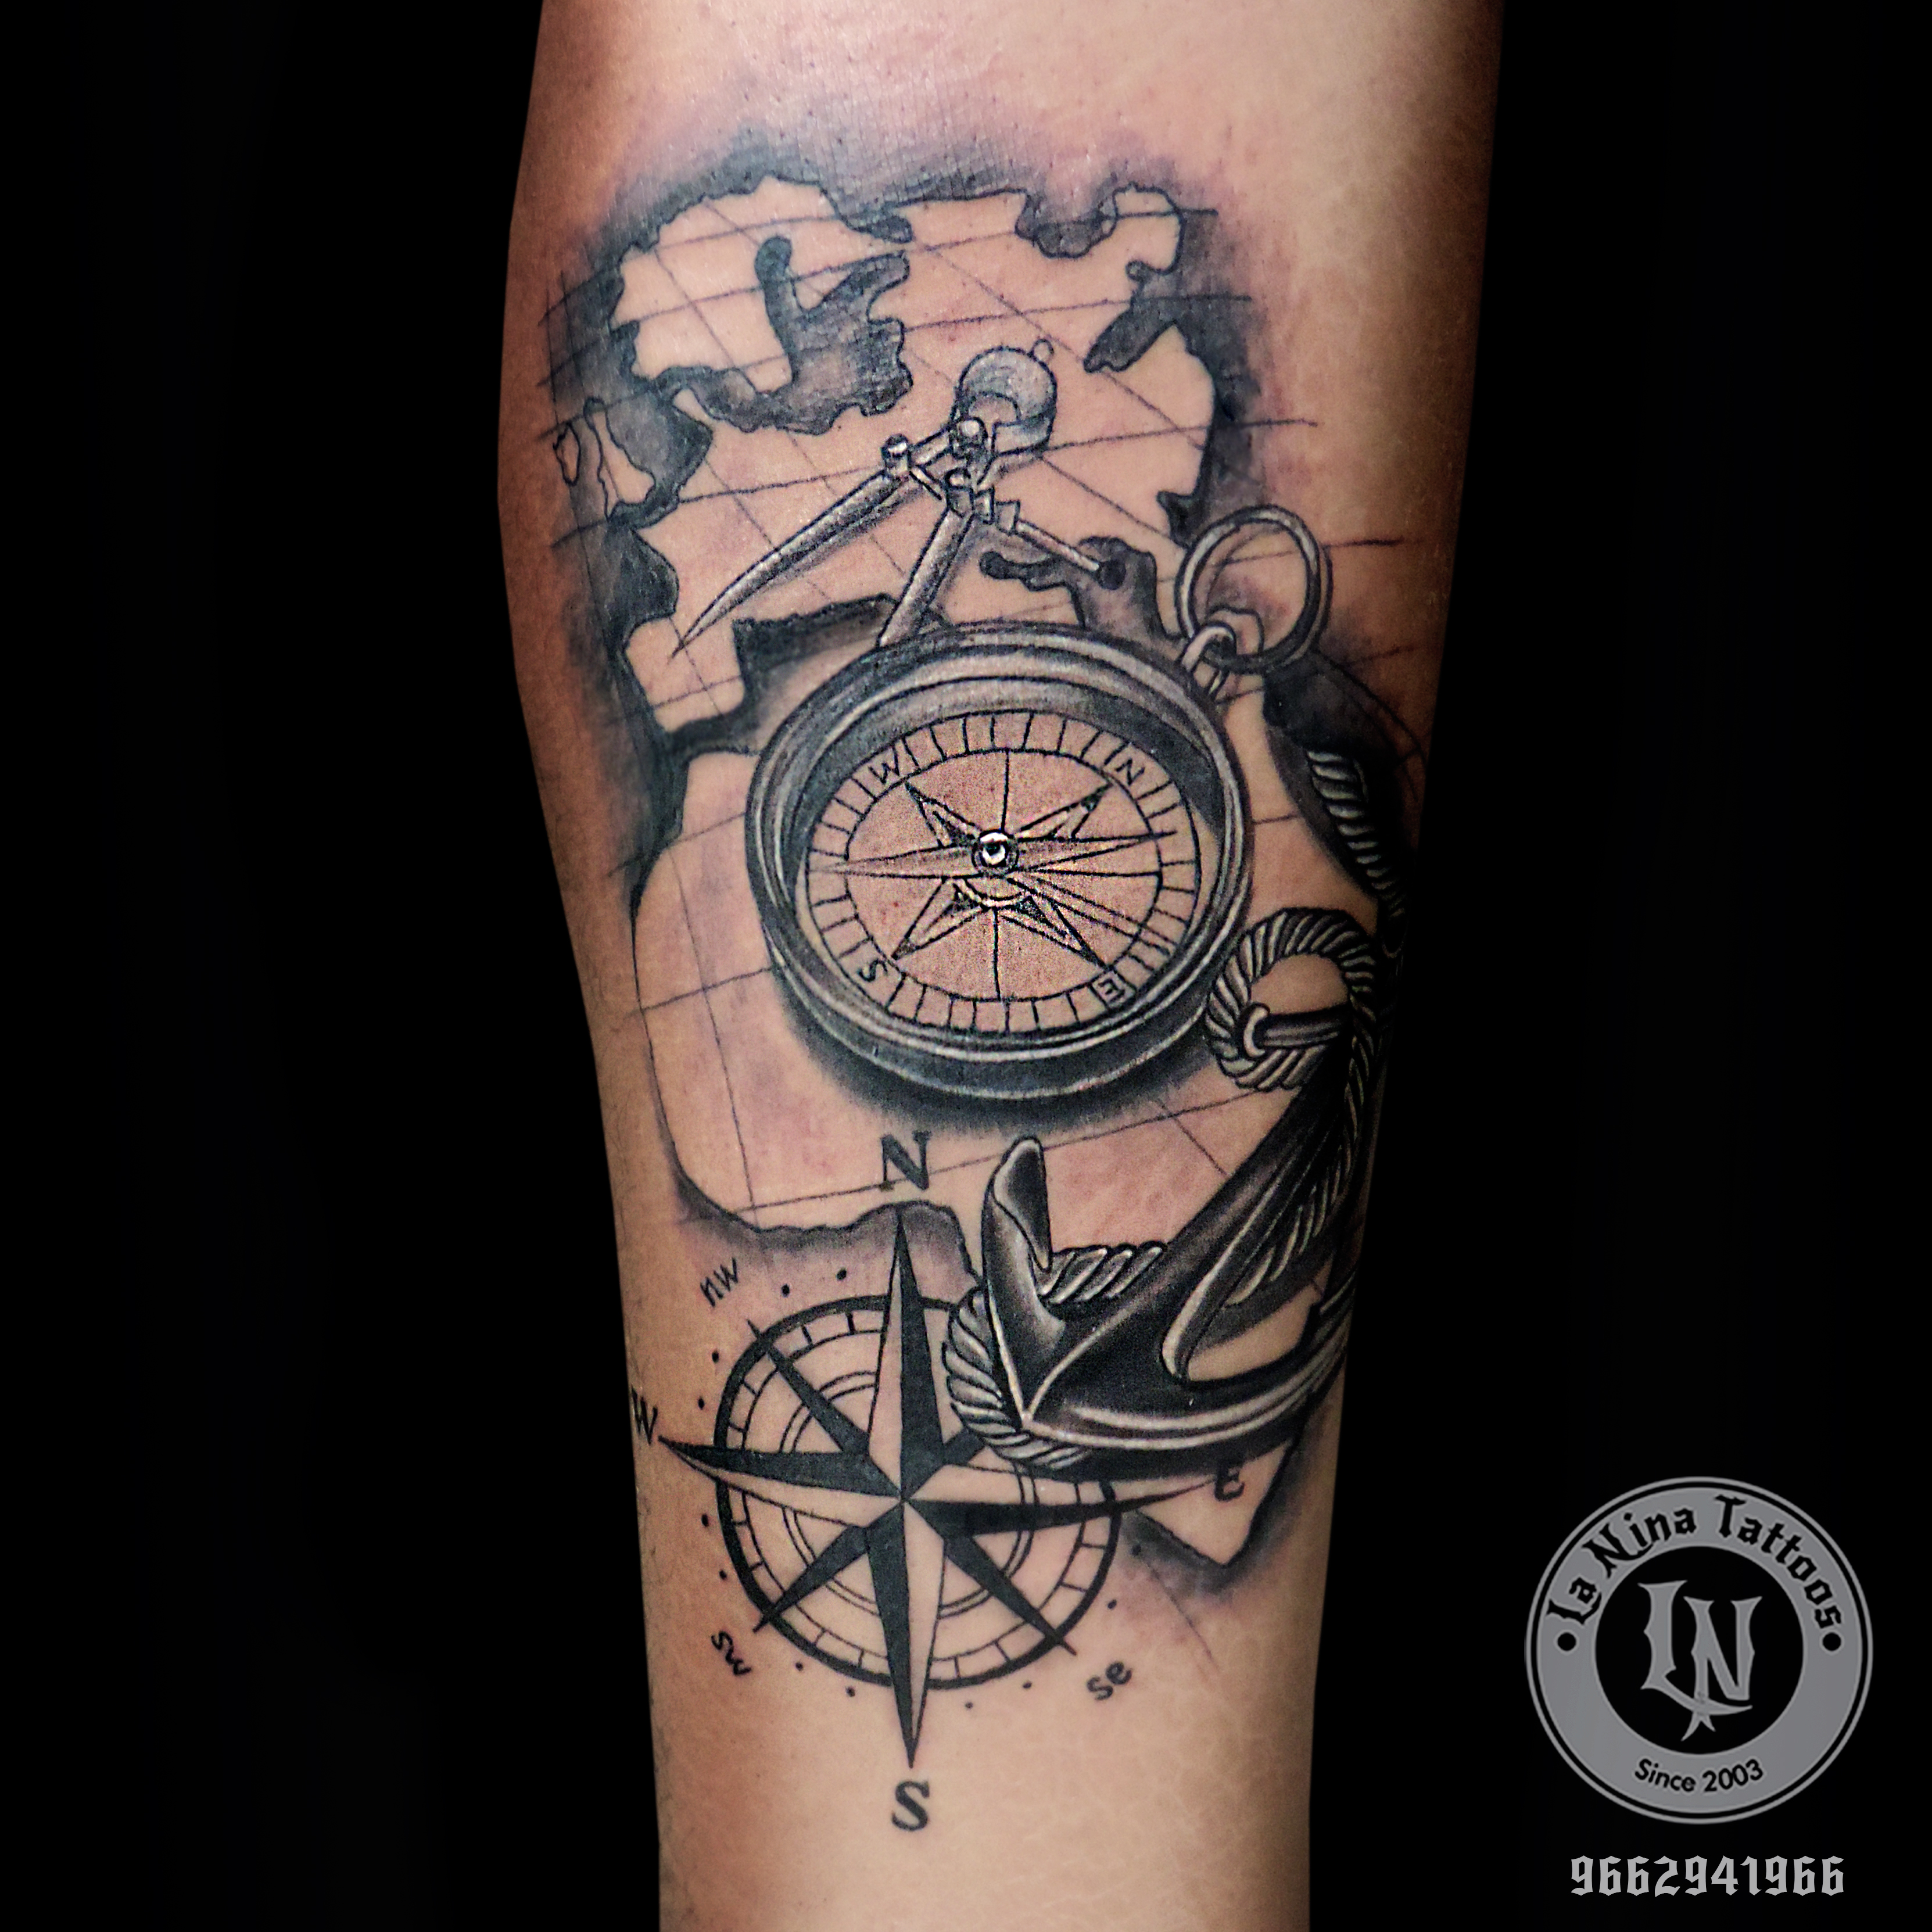 best-tattoo-artist-la-nina-tattoo-nautical-tattoo-ahmedabad-gujarat-india-black-poision-1920-aliens-